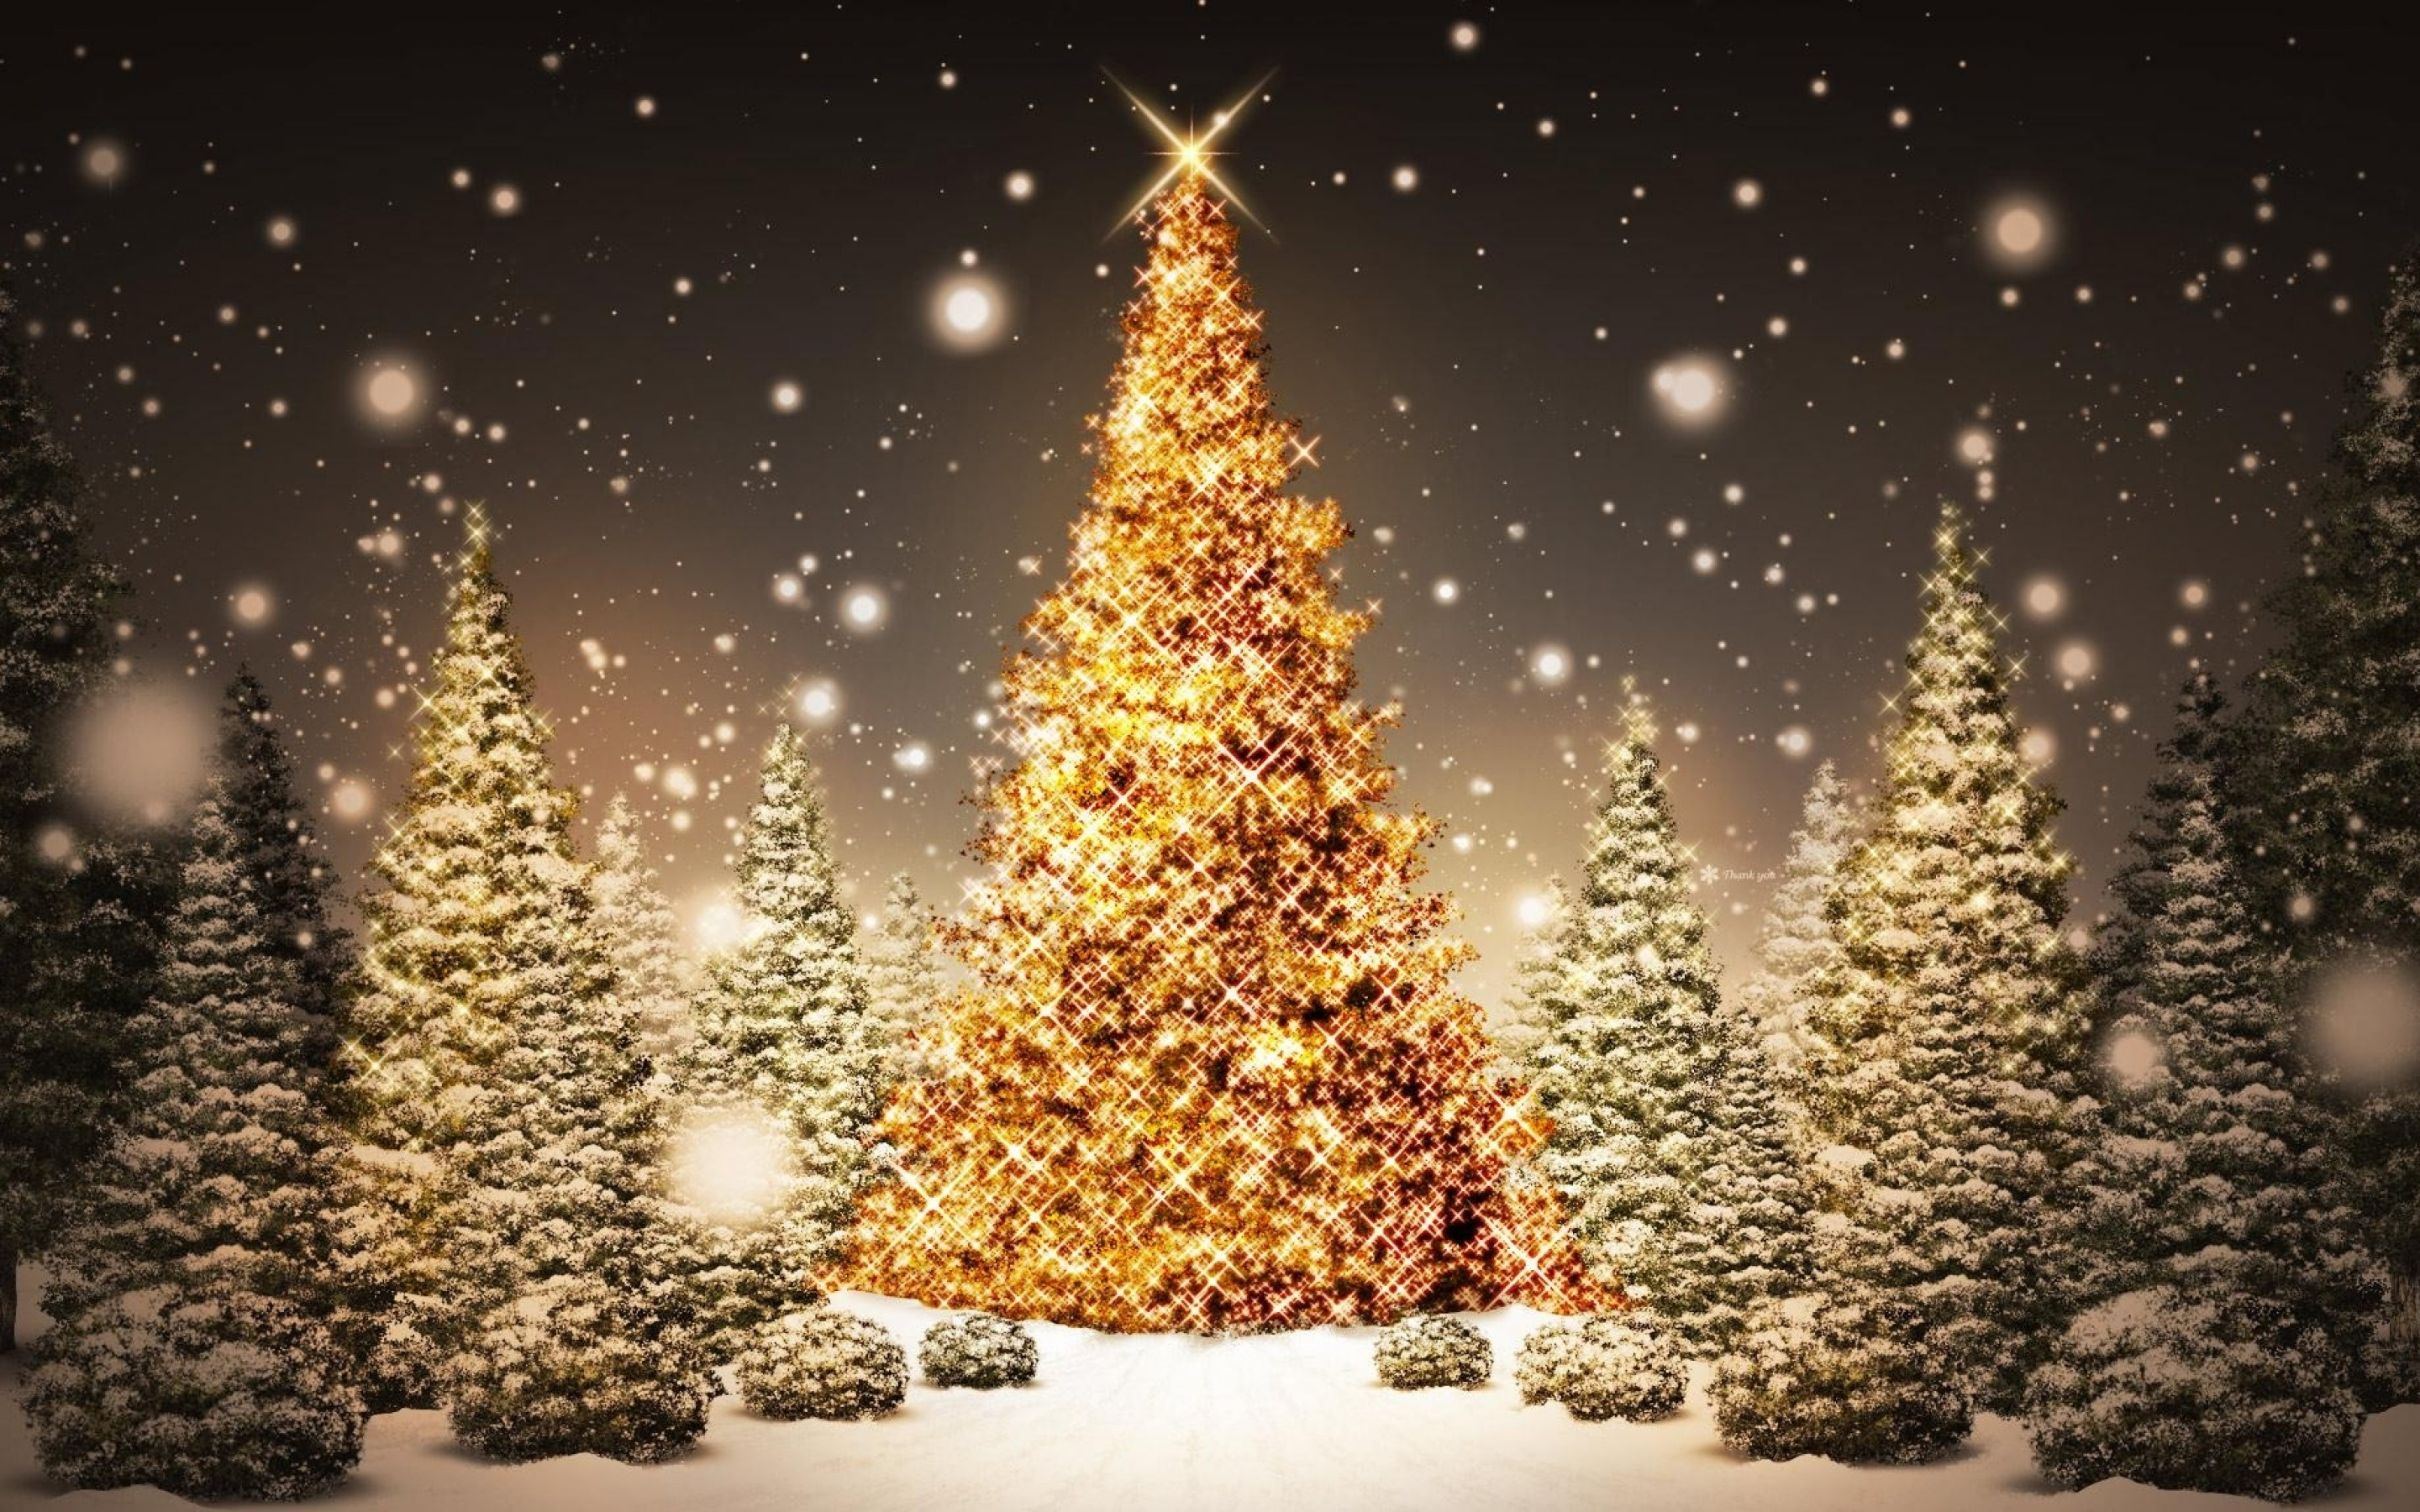 Best HD Christmas Wallpapers For Your Desktop PC [ 2015 ]